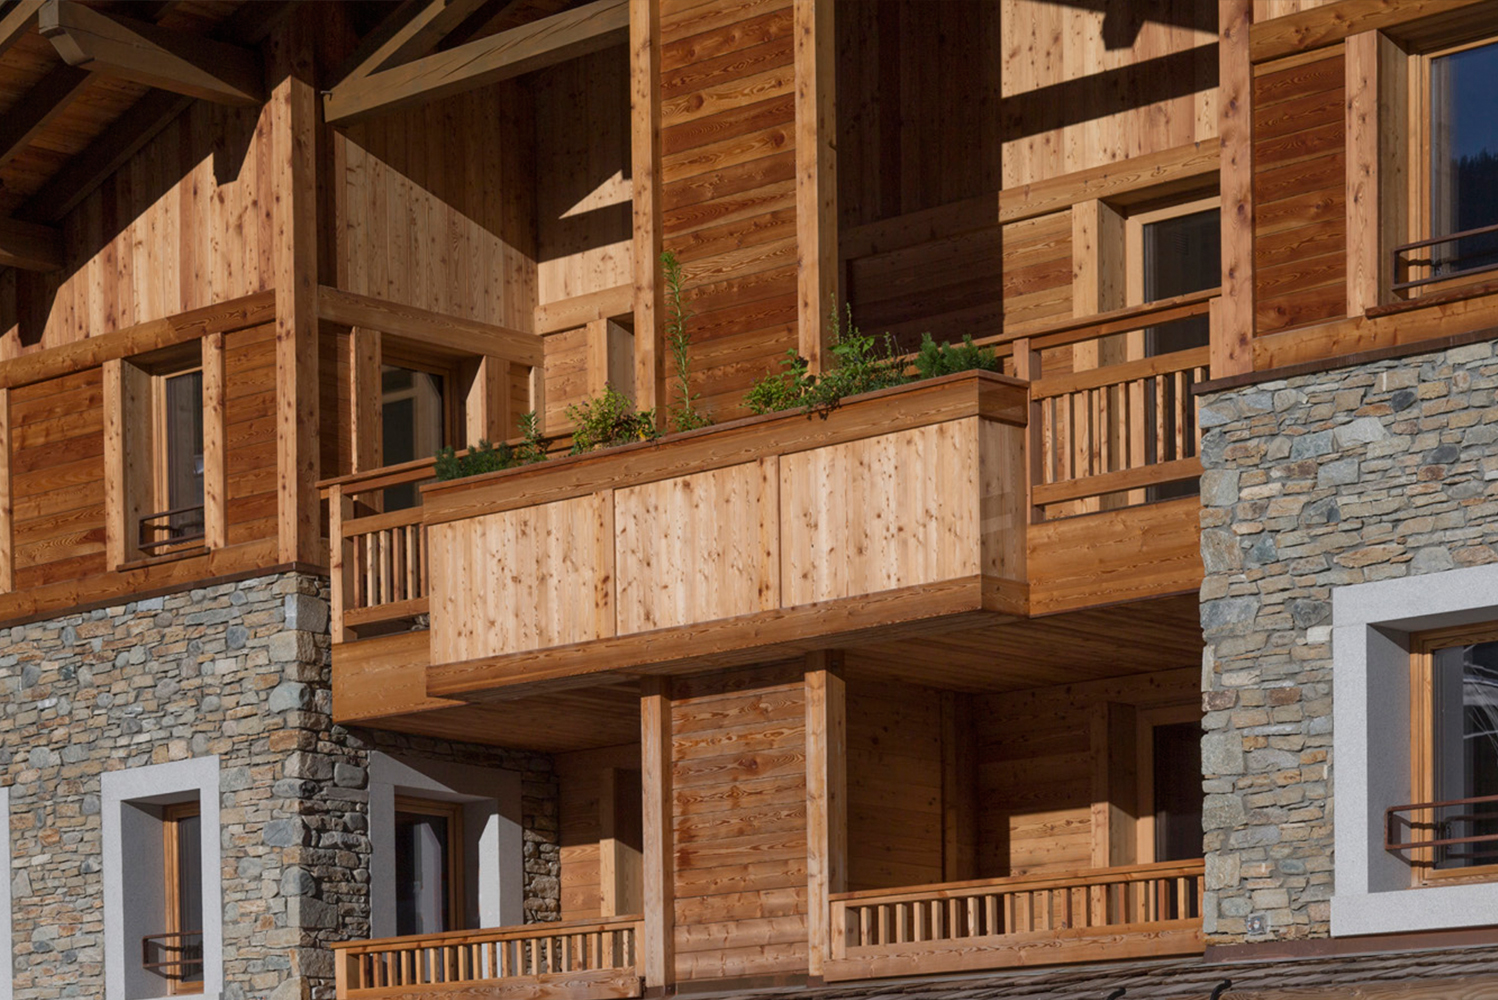 Four Seasons Hotel Megève will be the third Four Seasons destination in France.